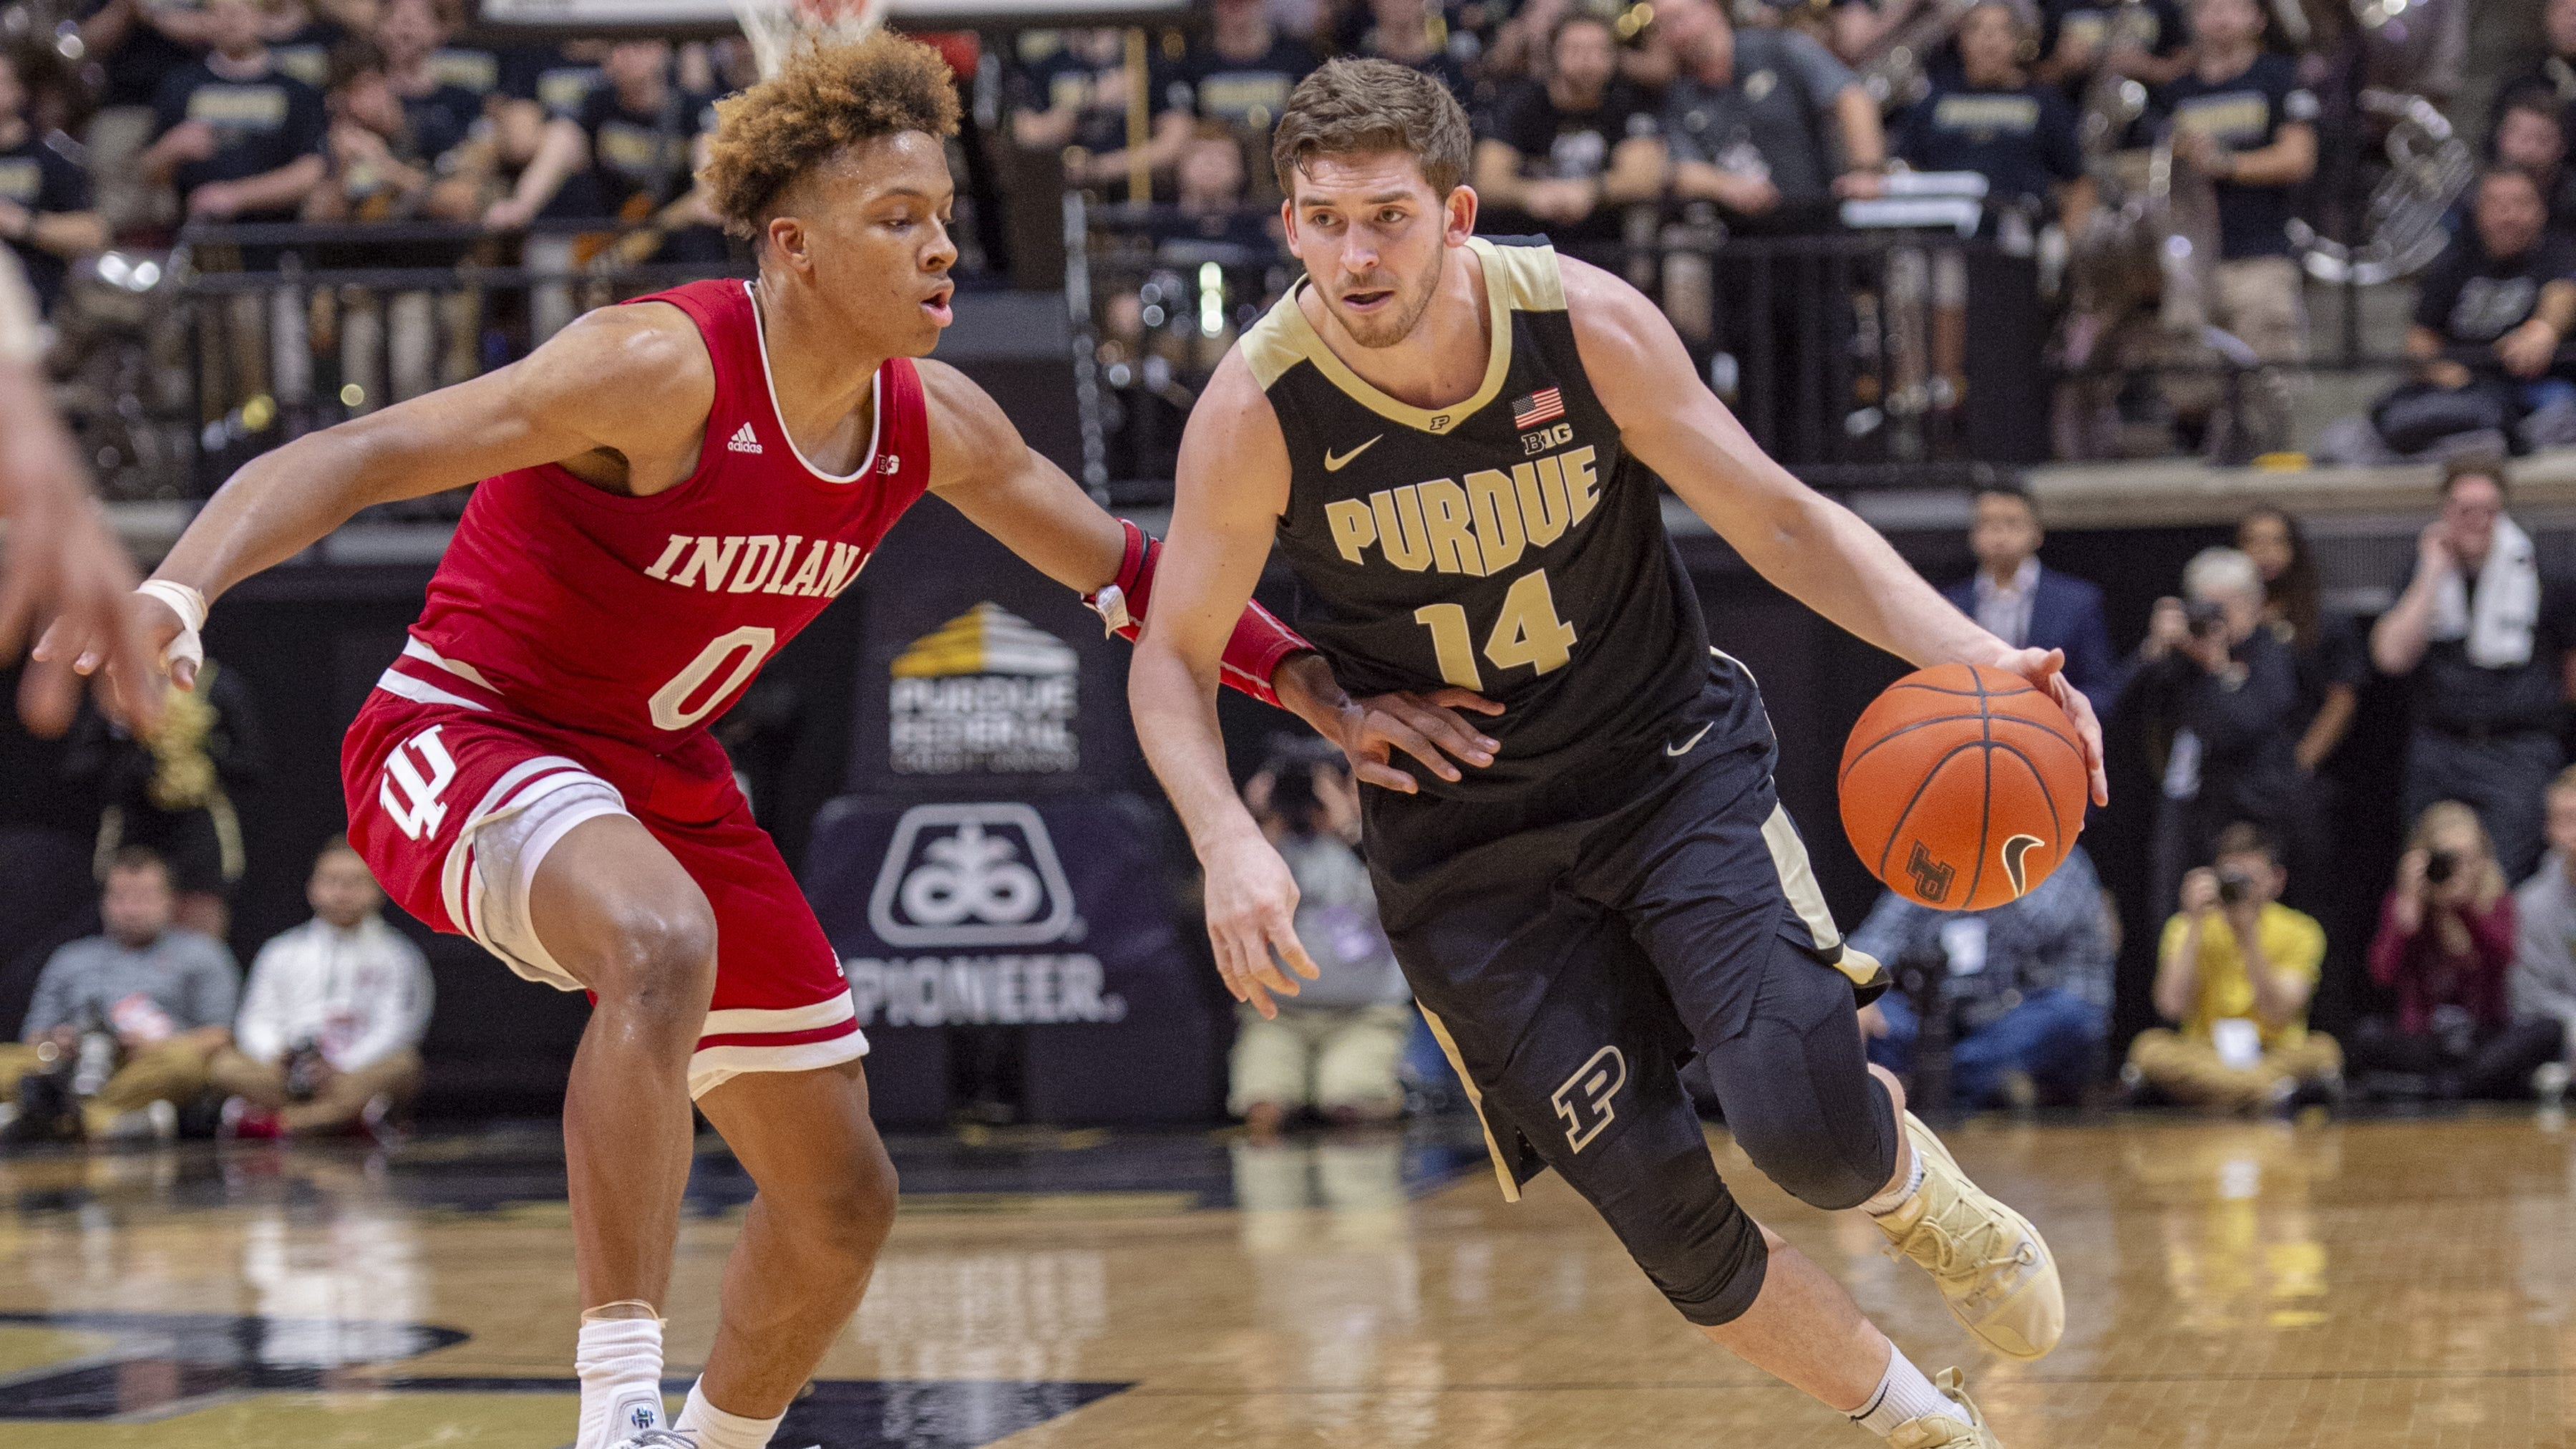 Purdue Boilermakers guard Ryan Cline (14) makes a move around the defense of Indiana Hoosiers guard Romeo Langford (0) during the second half of action. Purdue hosted Indiana in a BigTen men's basketball matchup, Saturday, Jan. 19, 2019. Purdue won 70-55.